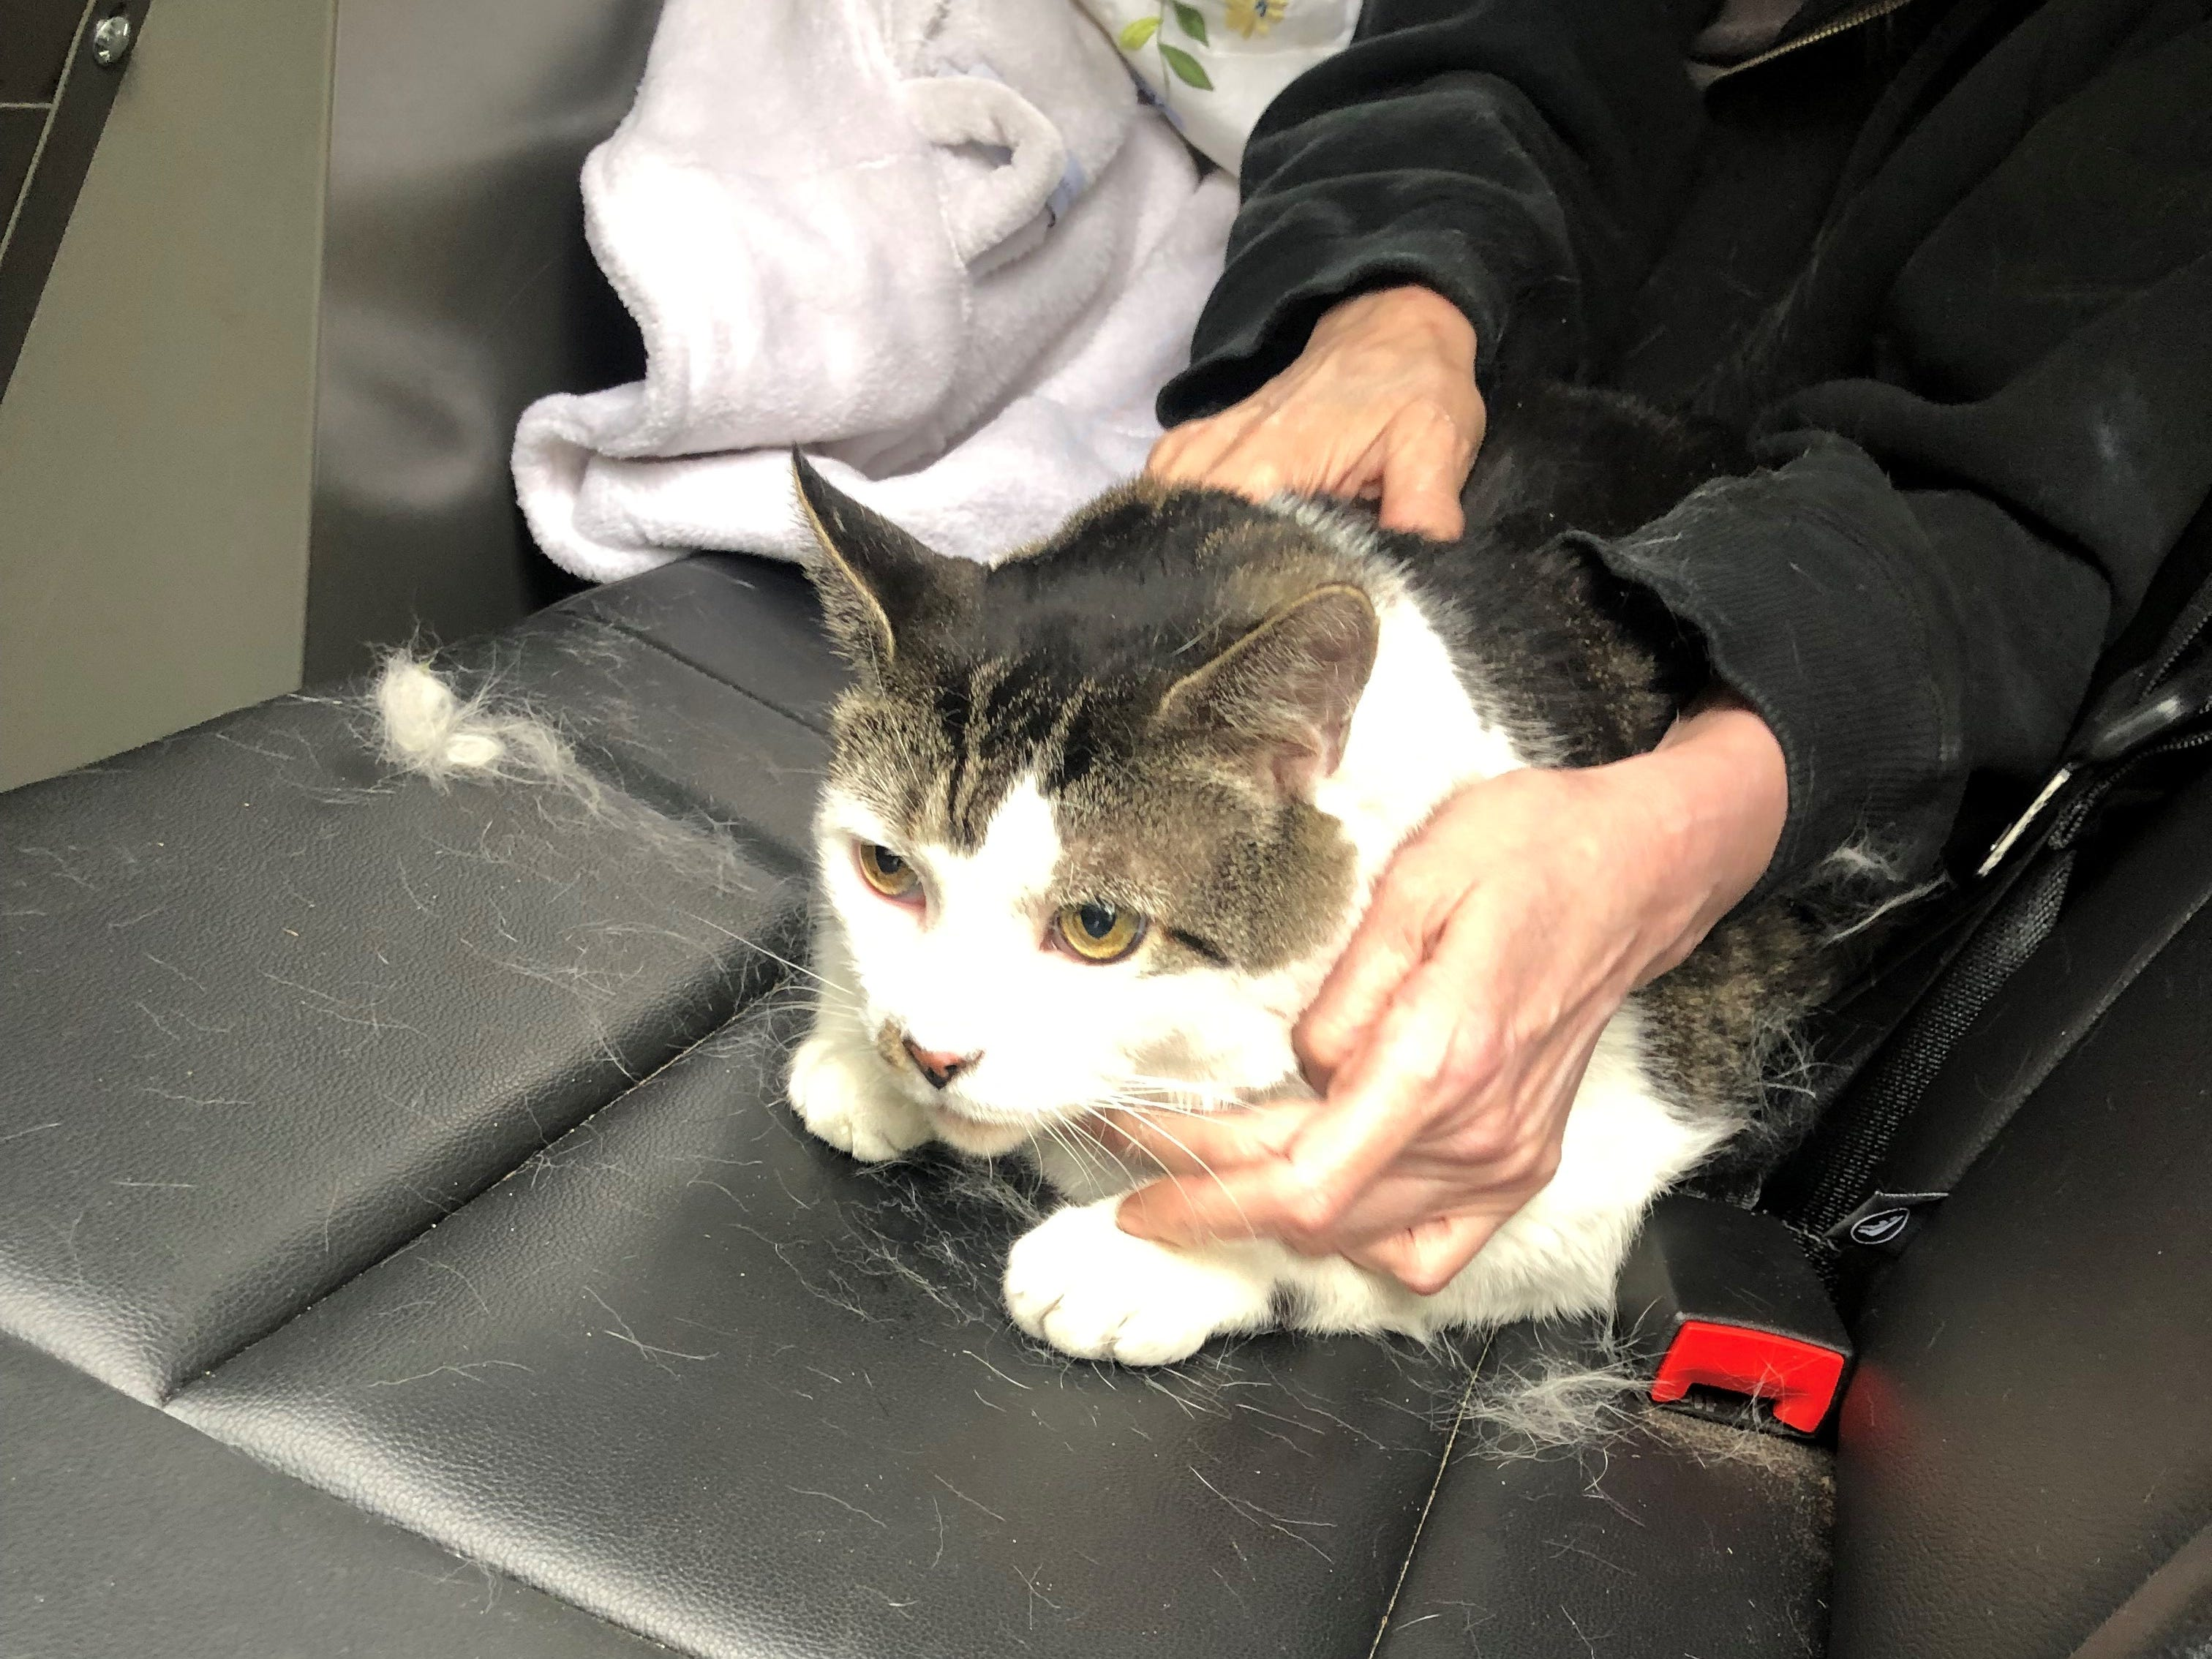 A cat rescued from a fire in Saddle Brook May 14, 2019.